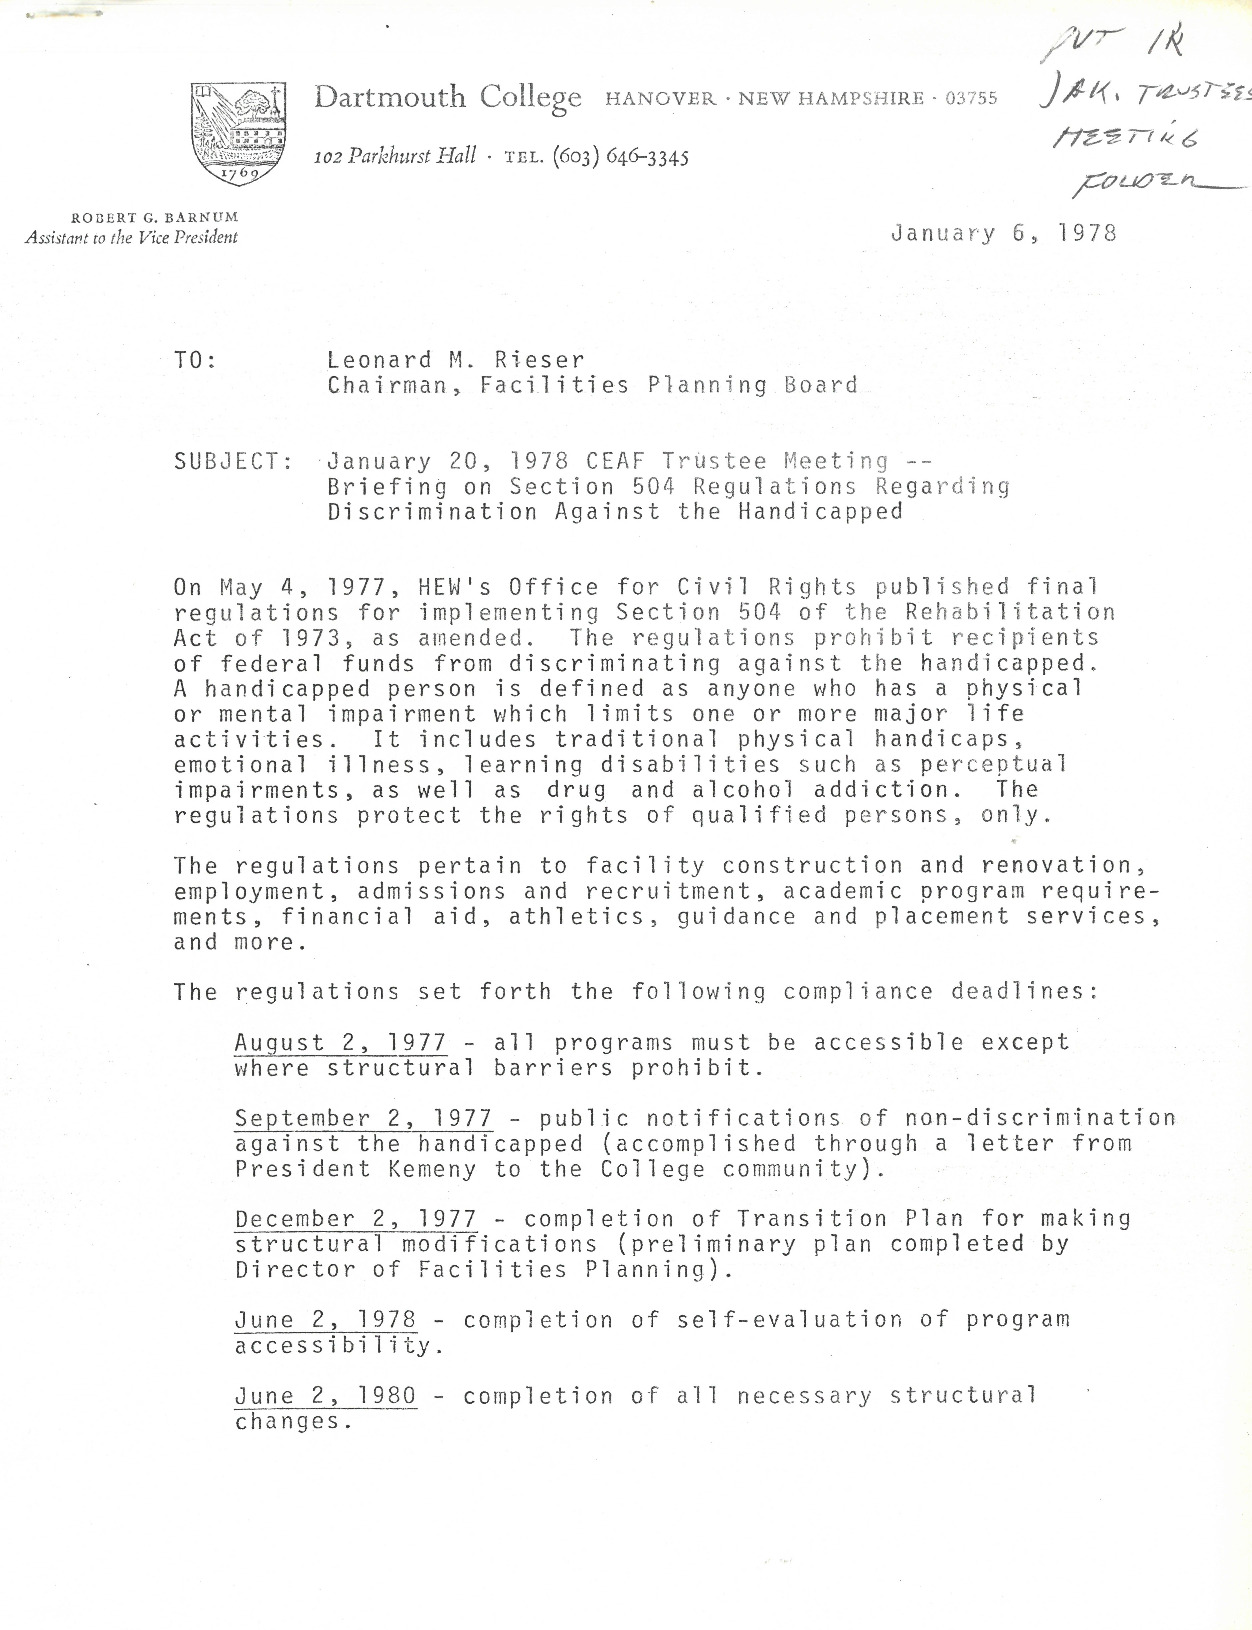 An overview of developments related to Dartmouth's response to Section 504 of the Rehabilitation Act of 1973 prepared for Leonard Rieser in advance of a January 20, 1978 Board of Trustees meeting. The document outlines compliance deadlines, a survey of campus facilities with estimates of renovation costs, and descriptions of the different priority levels in the institutional Transition Plan.